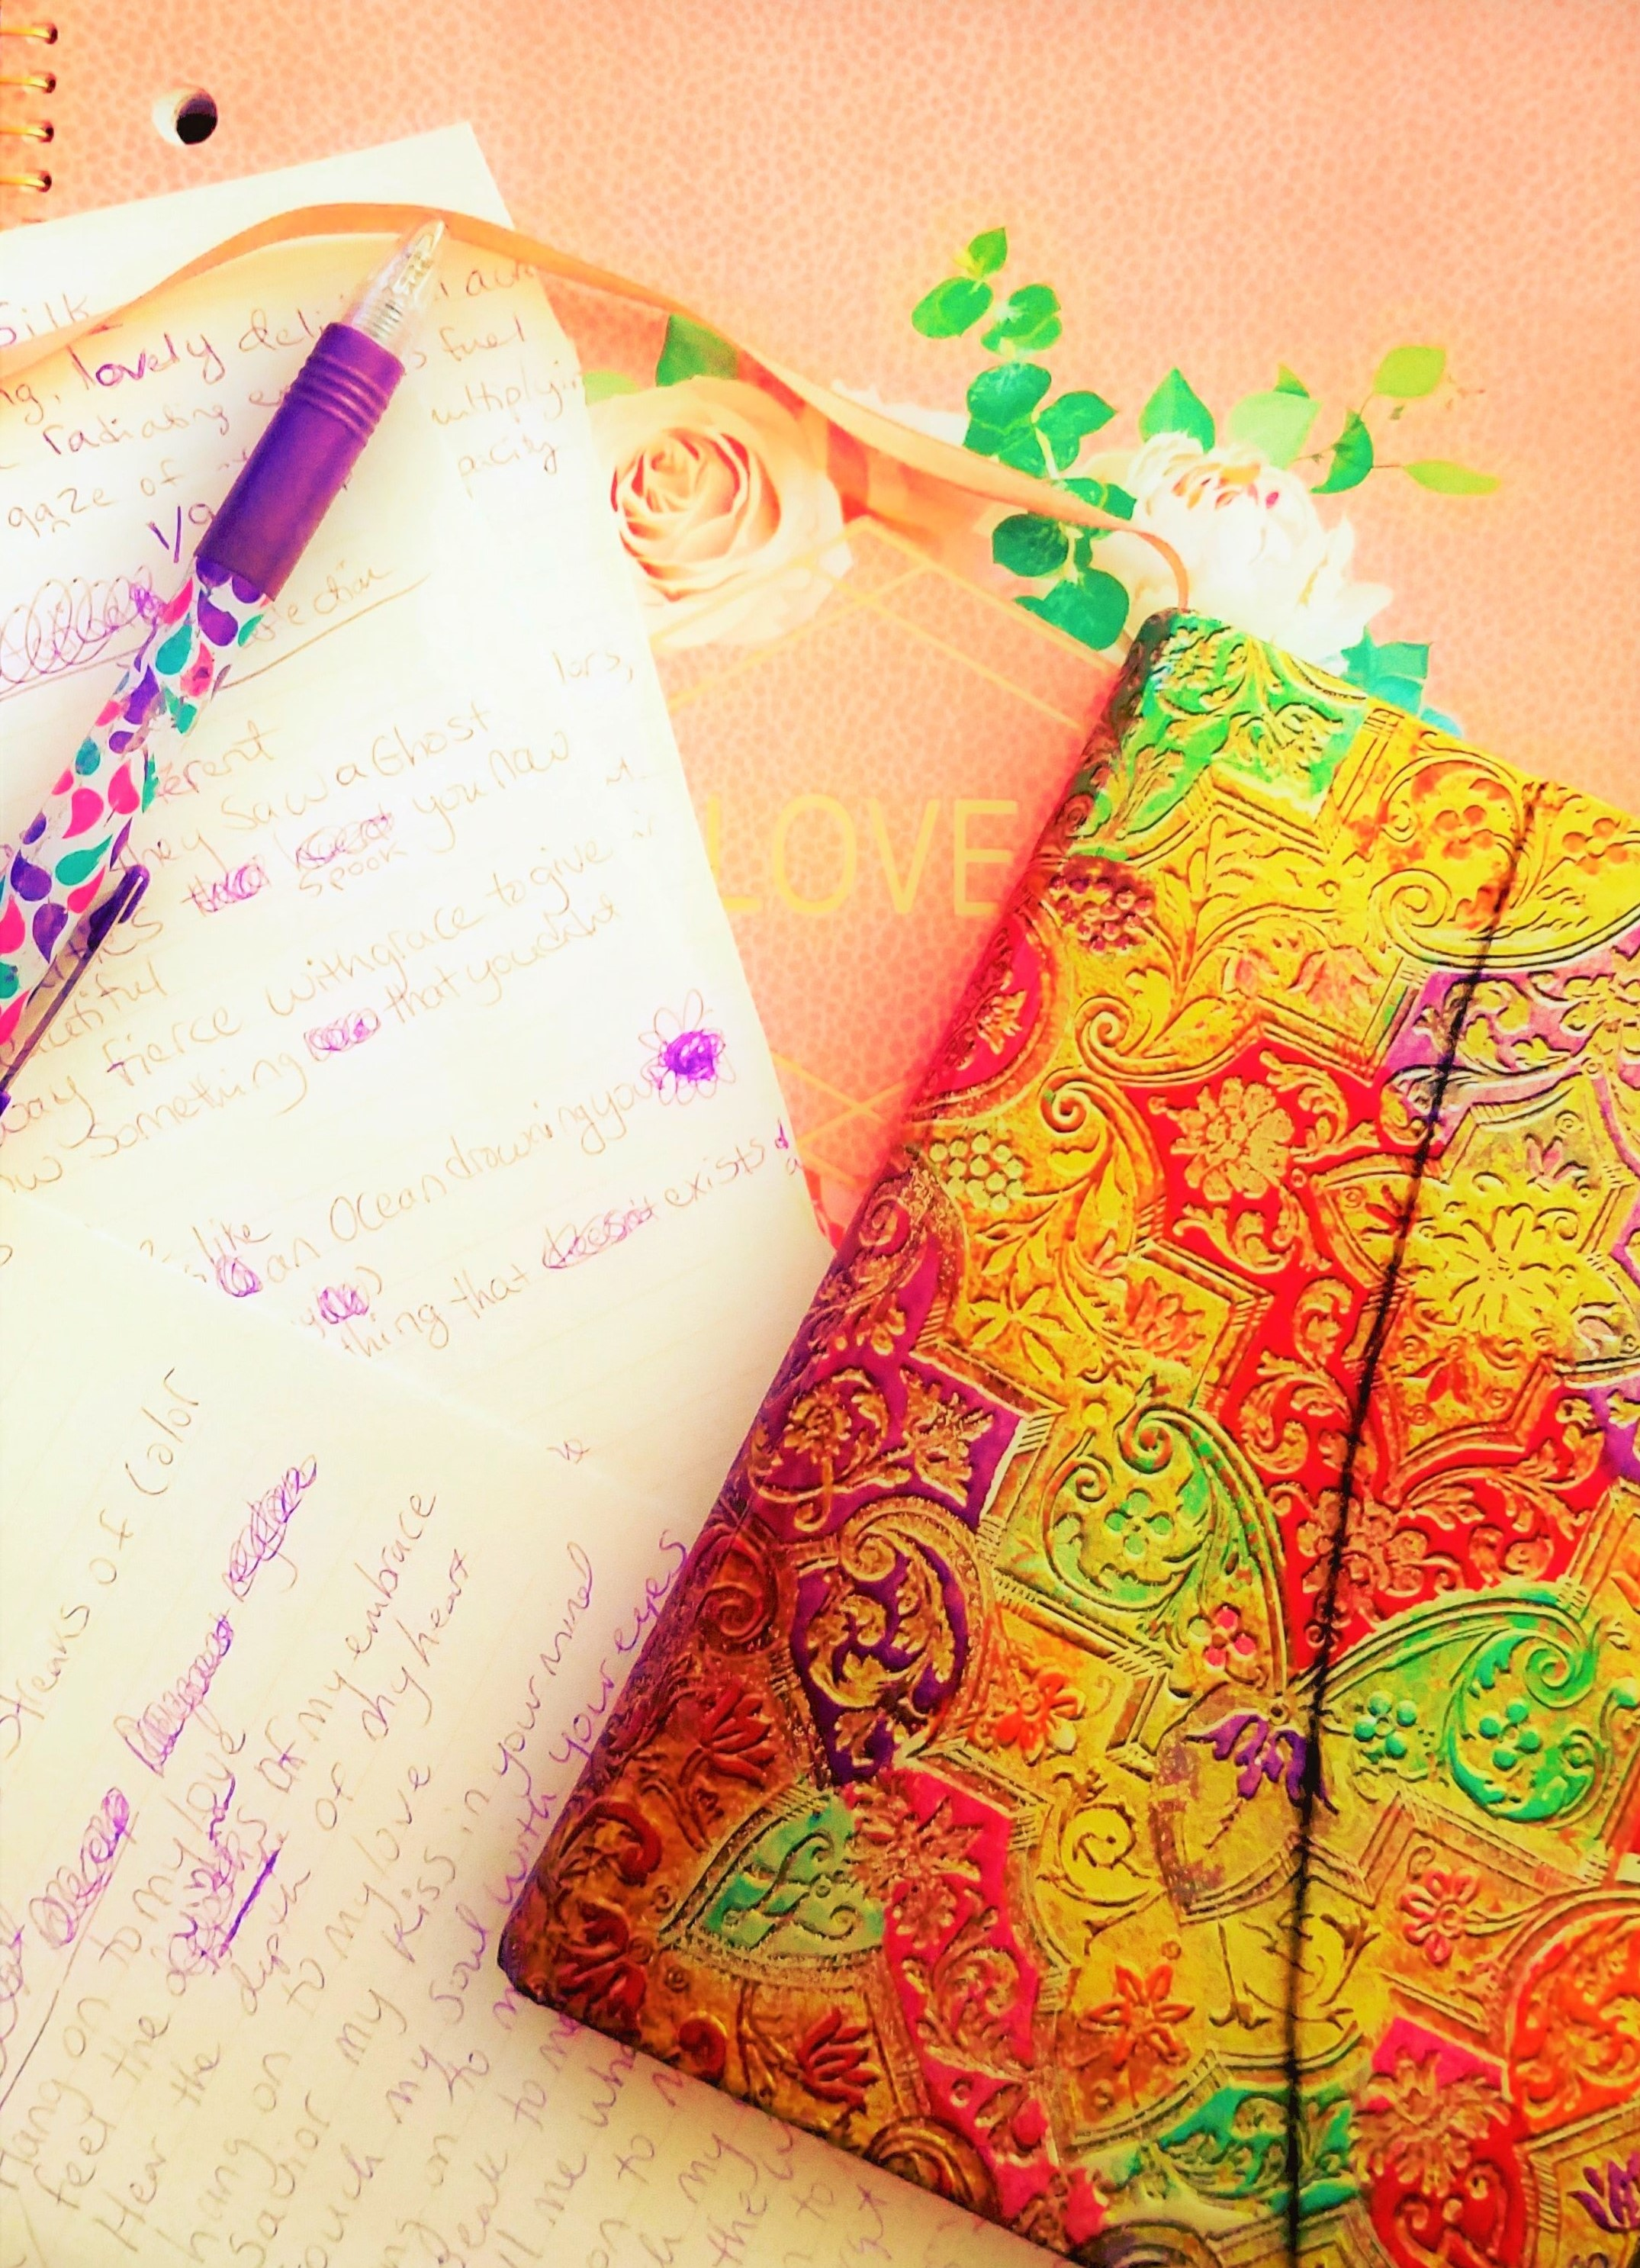 colorful open notebook and pen